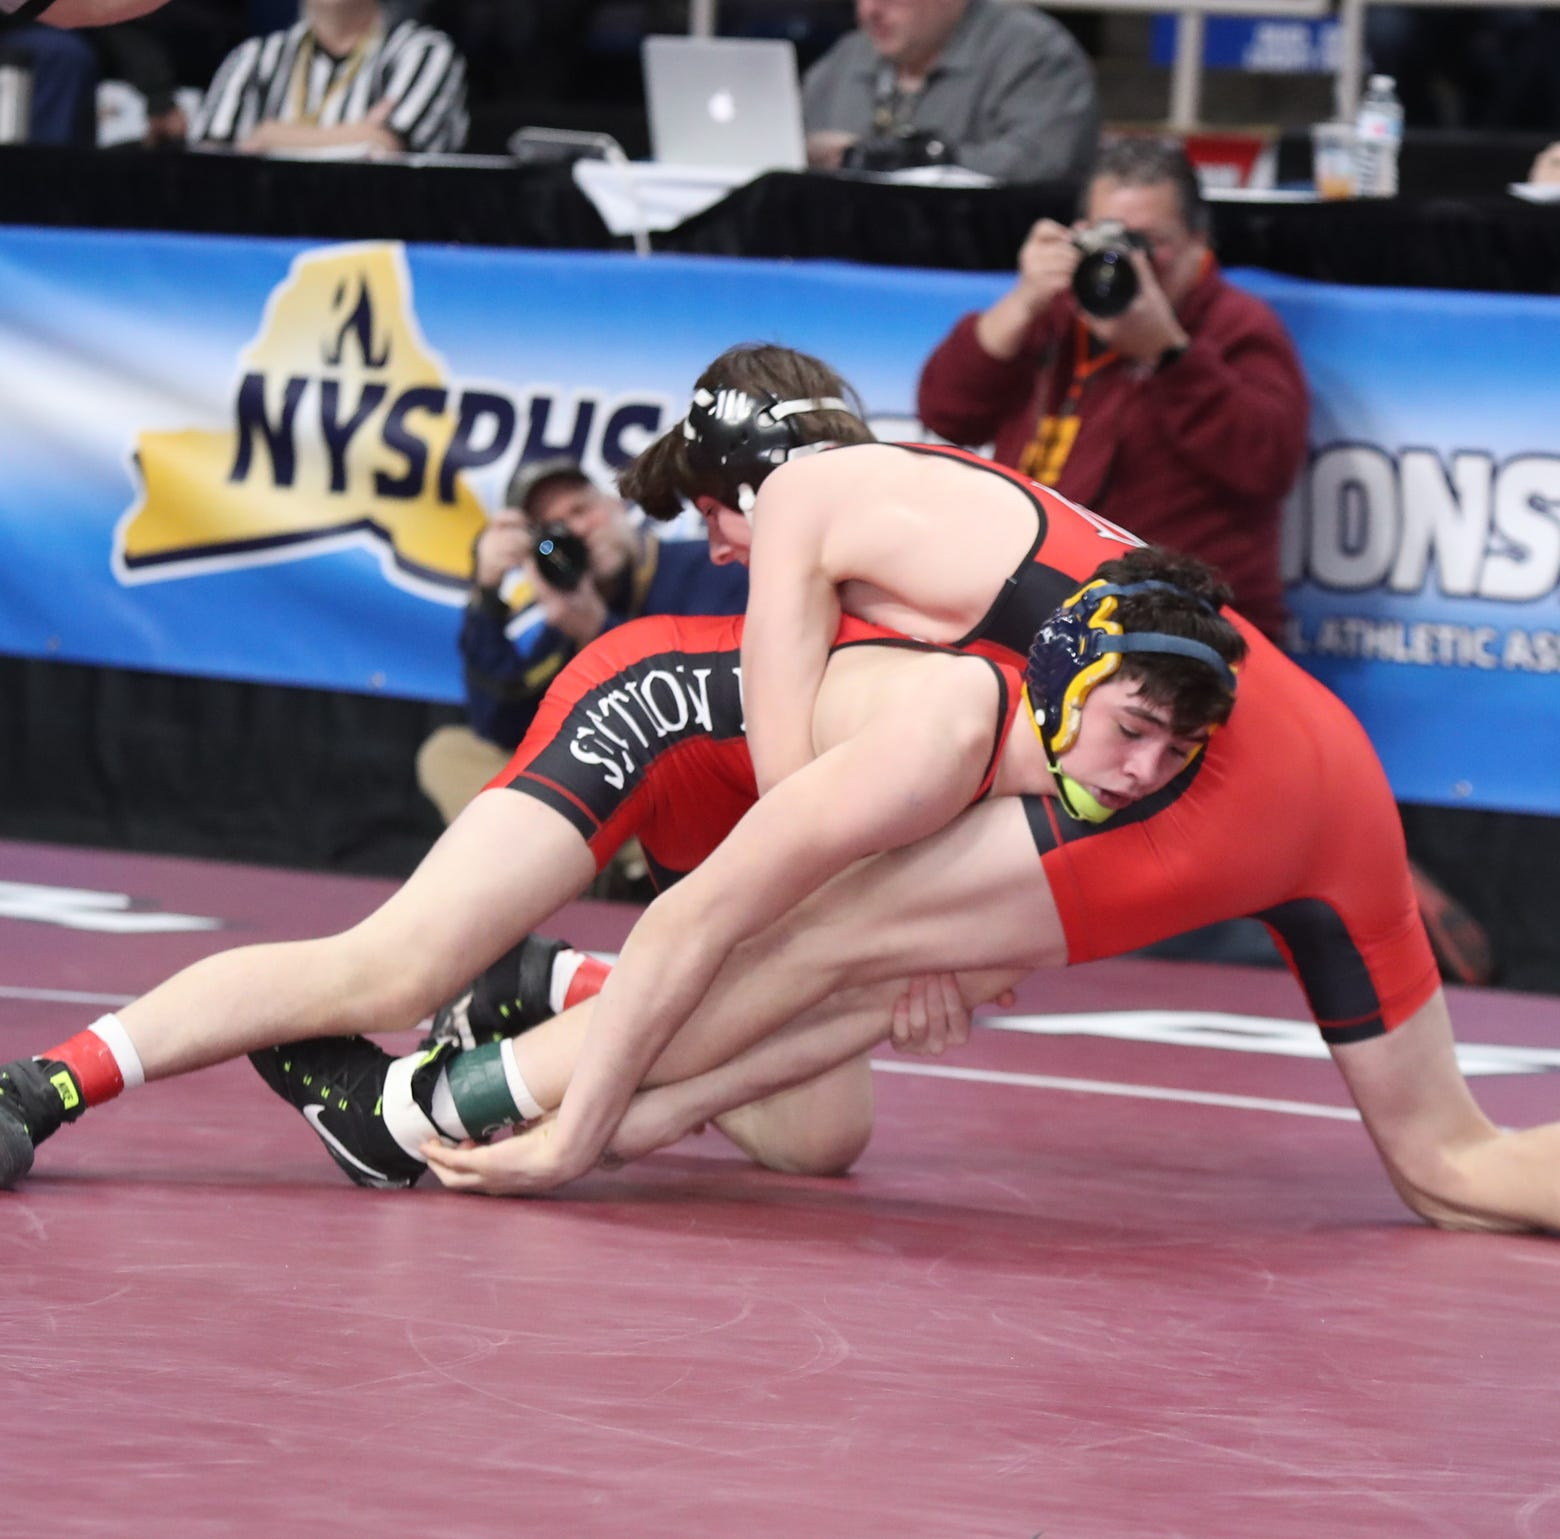 At NY state wrestling championships, Section 4 regains its footing: Rob Centorani column